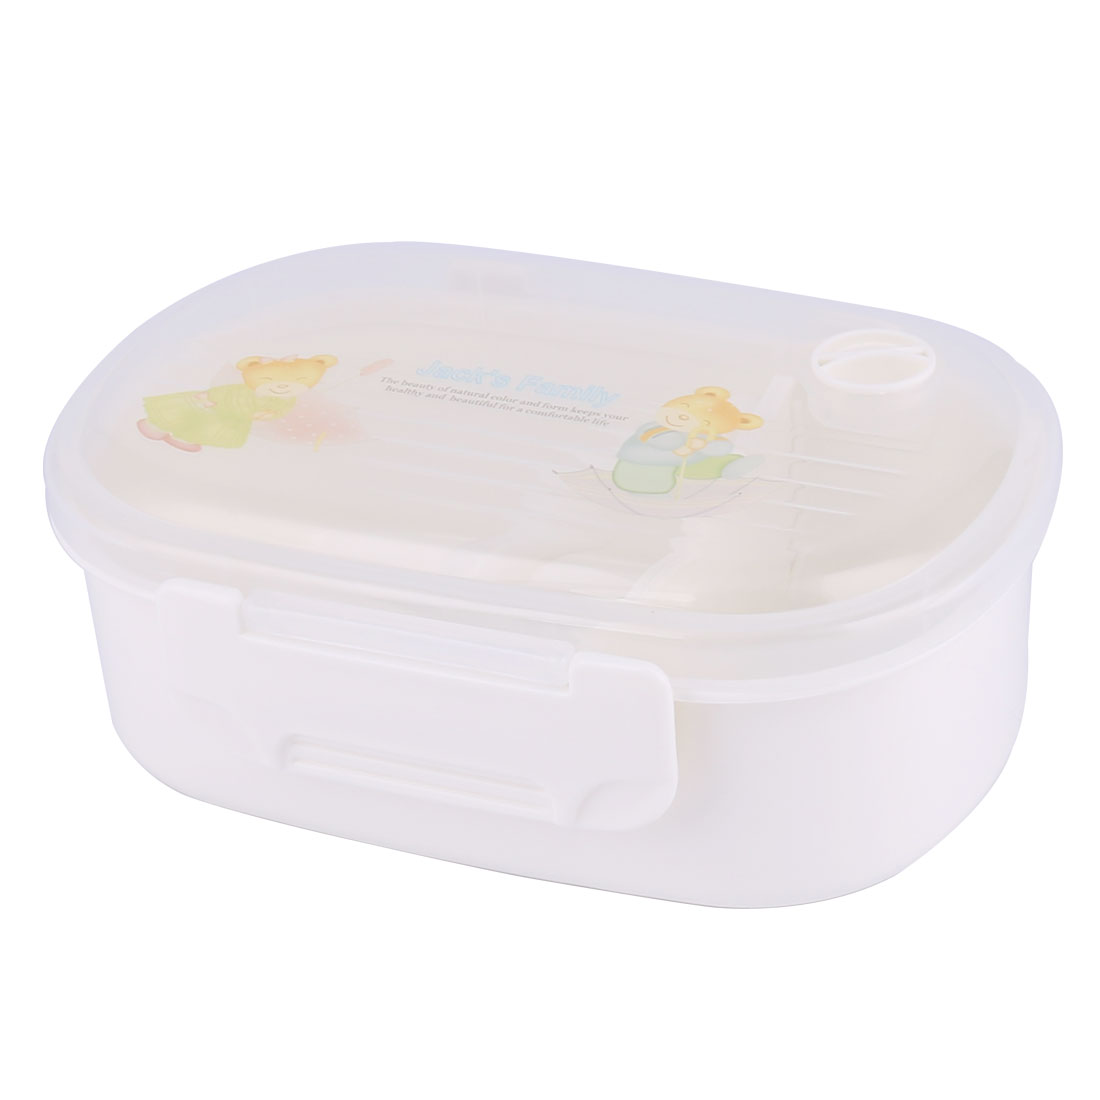 Oval Shaped 2 Compartments Tableware Food Bento Lunch Bowl Container Box